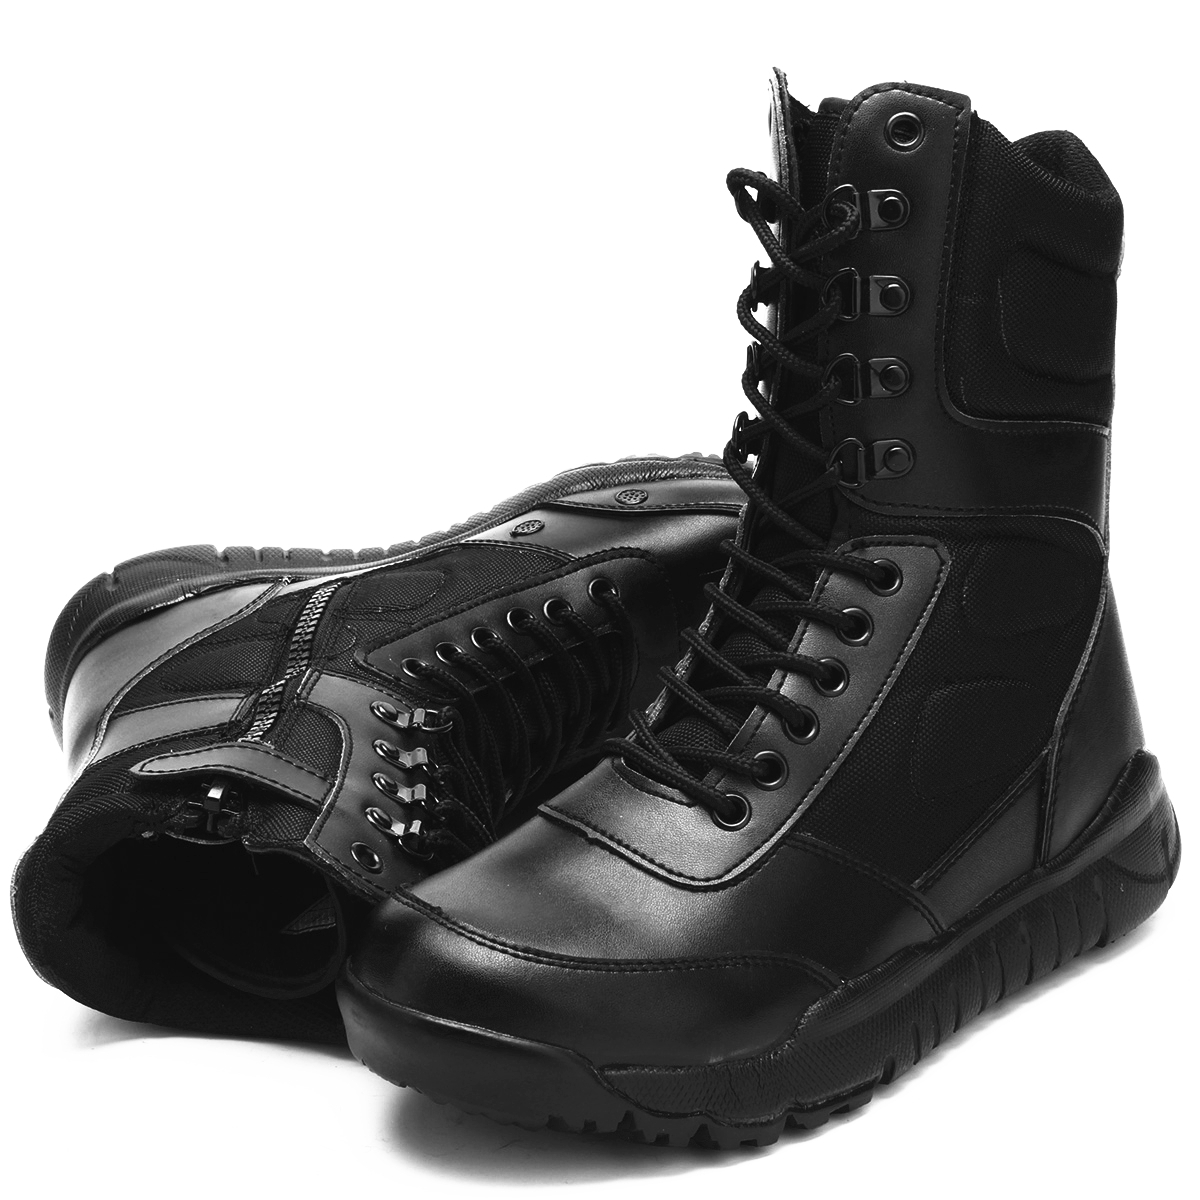 New Fashion Men's Military Ankle Boots High Top Leather Army Combat SWAT Hunting Work Shoes